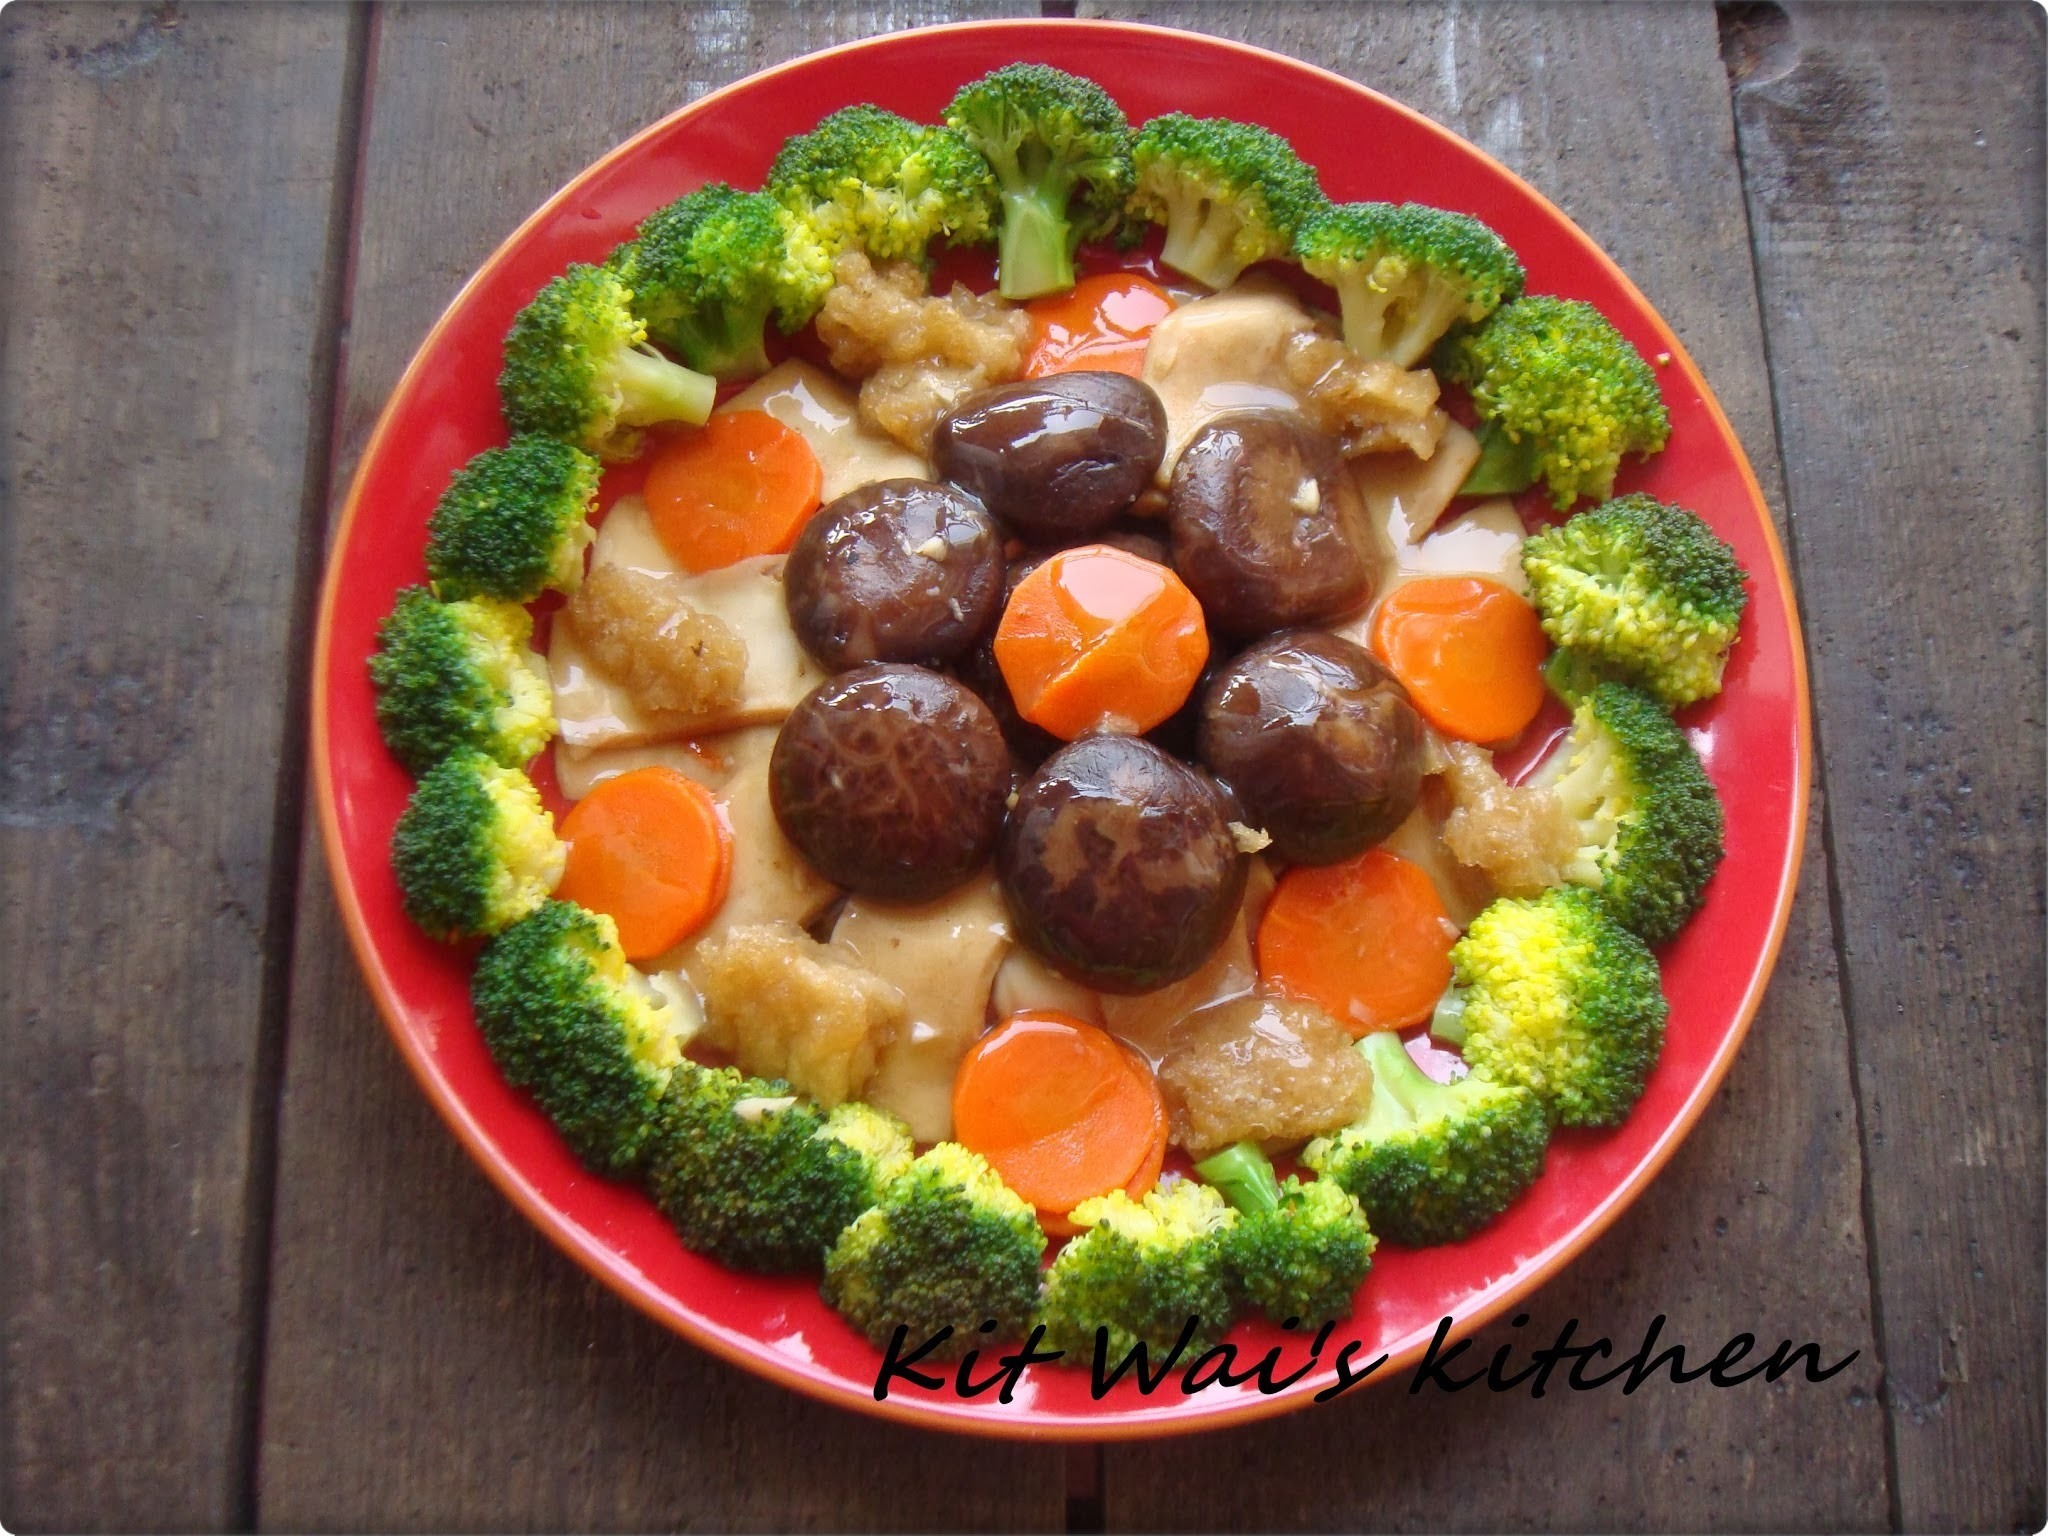 吉祥三宝鱼鳔鲍片焖香菇 ~ Braised mushromm with fish maw and sliced abalone